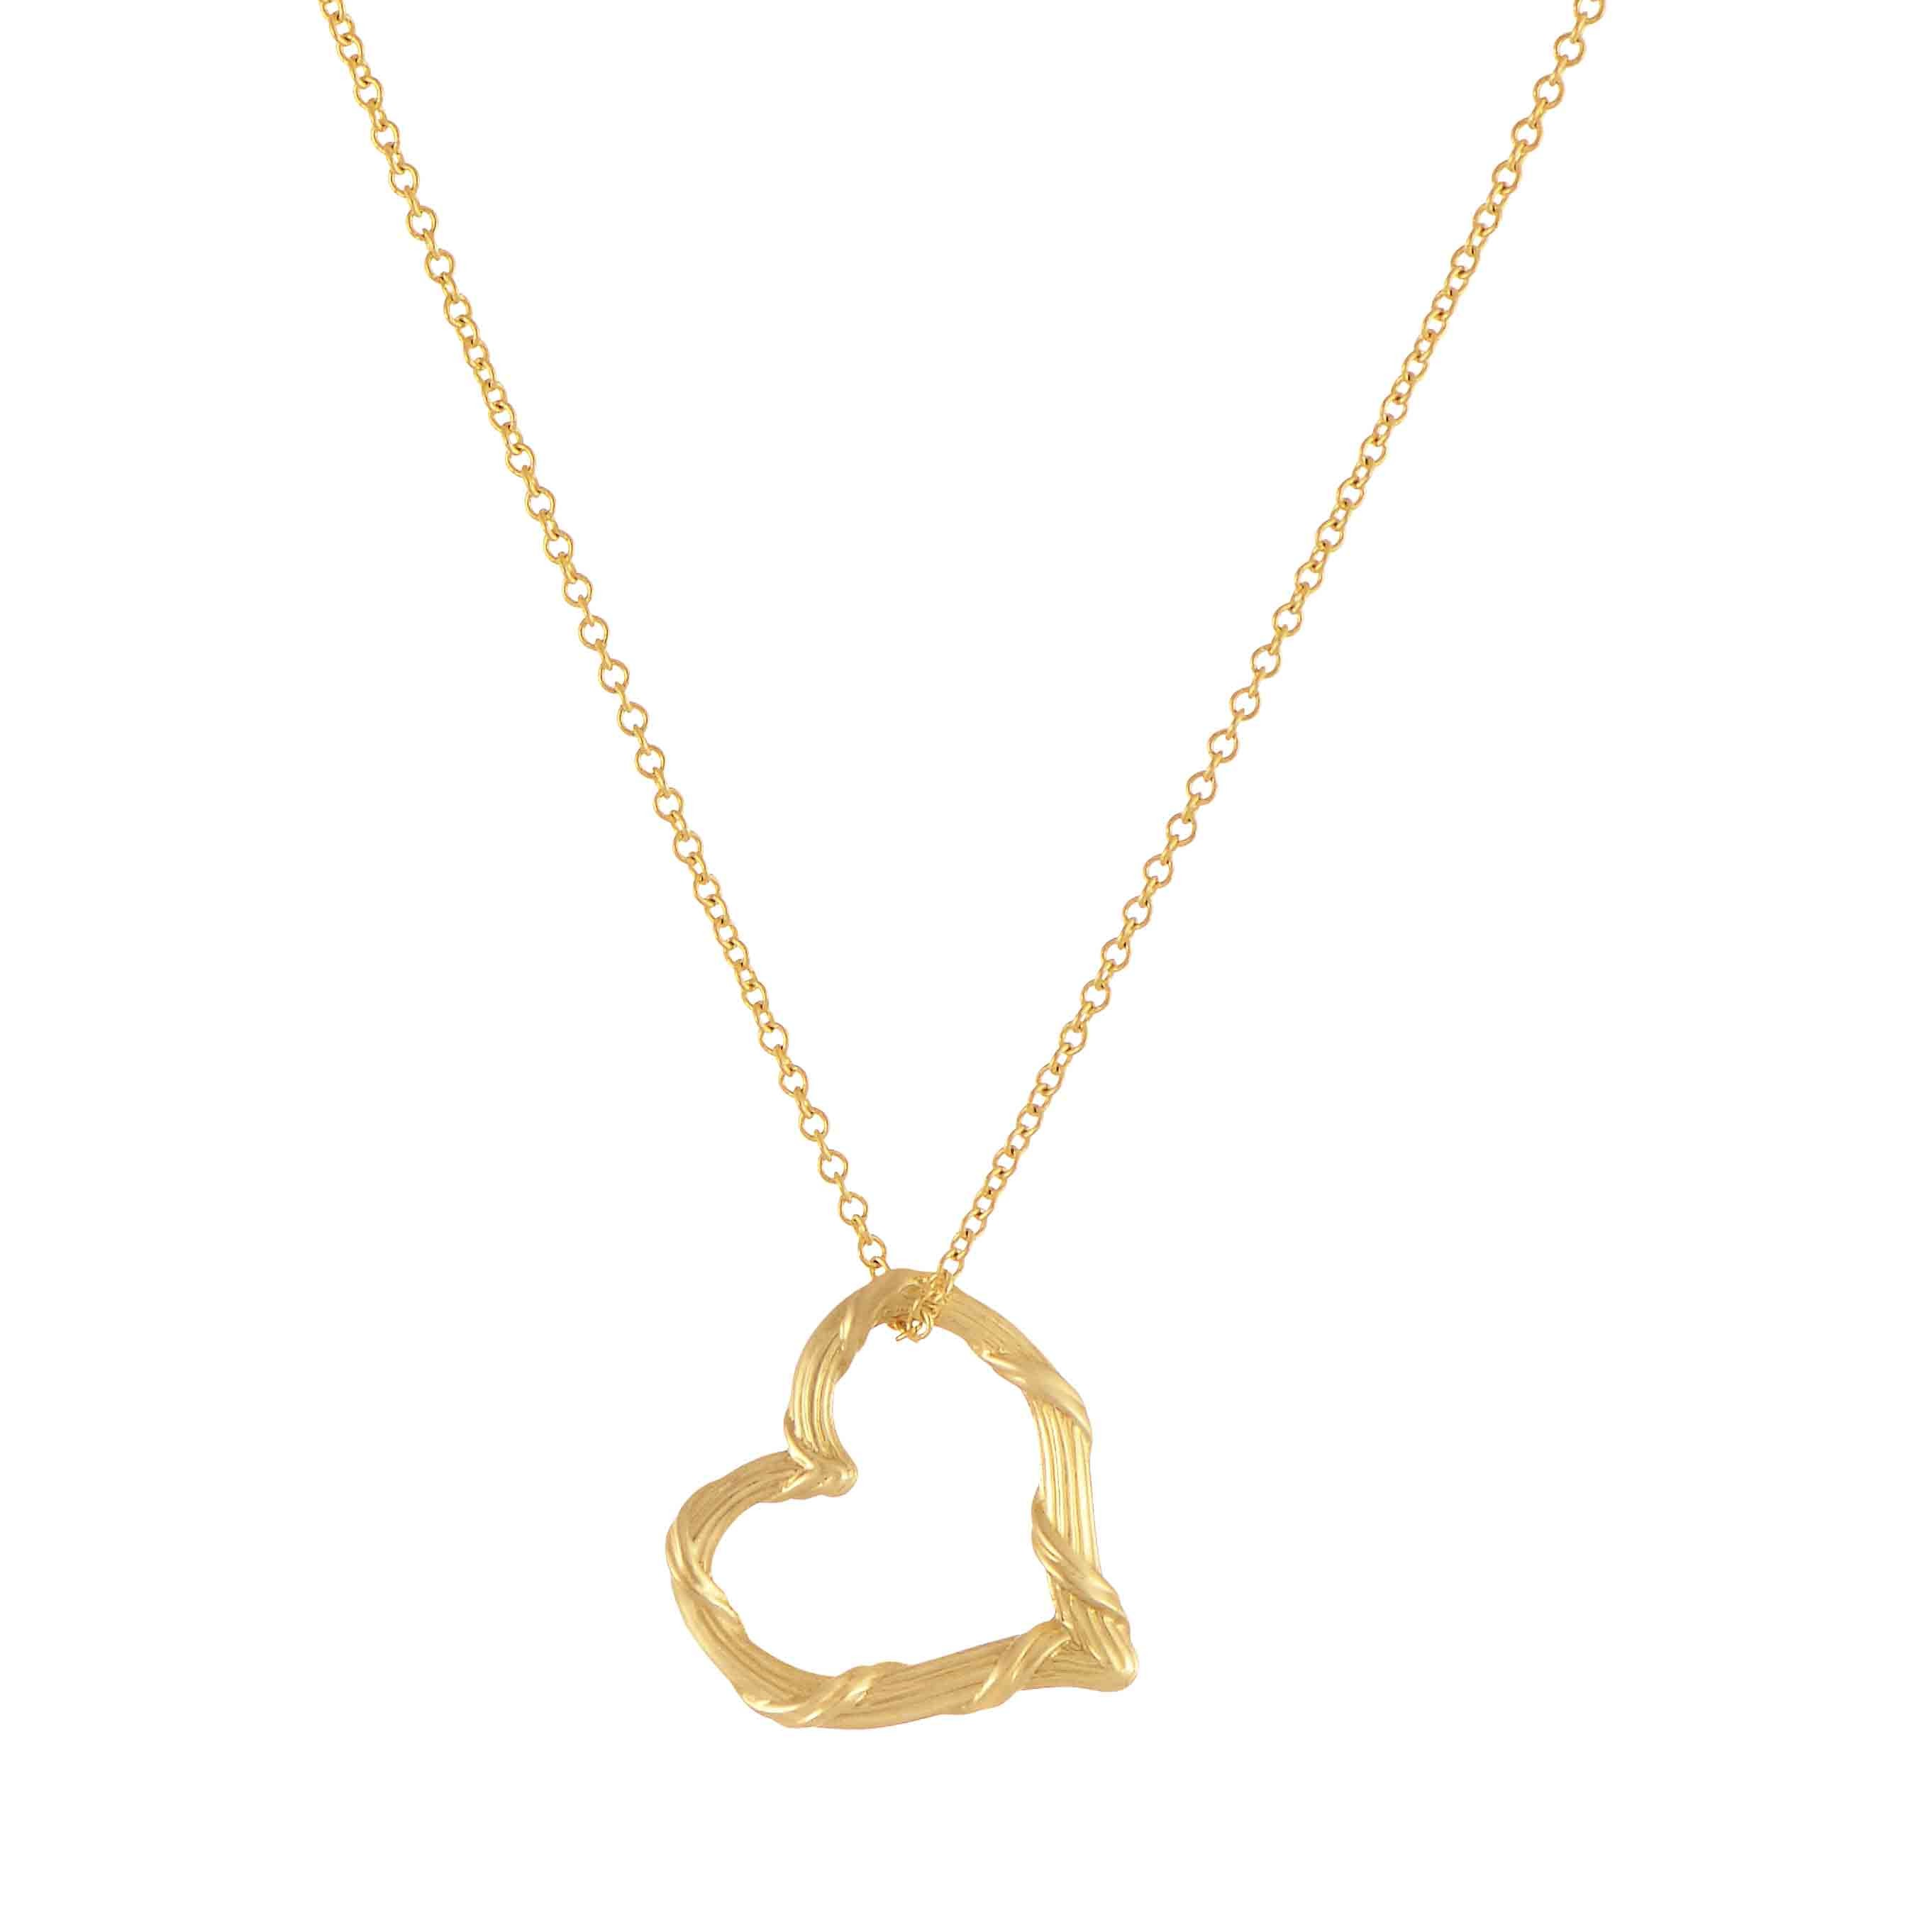 dp pendant leaf sterling com s charm mini gold minimal silver necklace amazon jewelry heart dainty